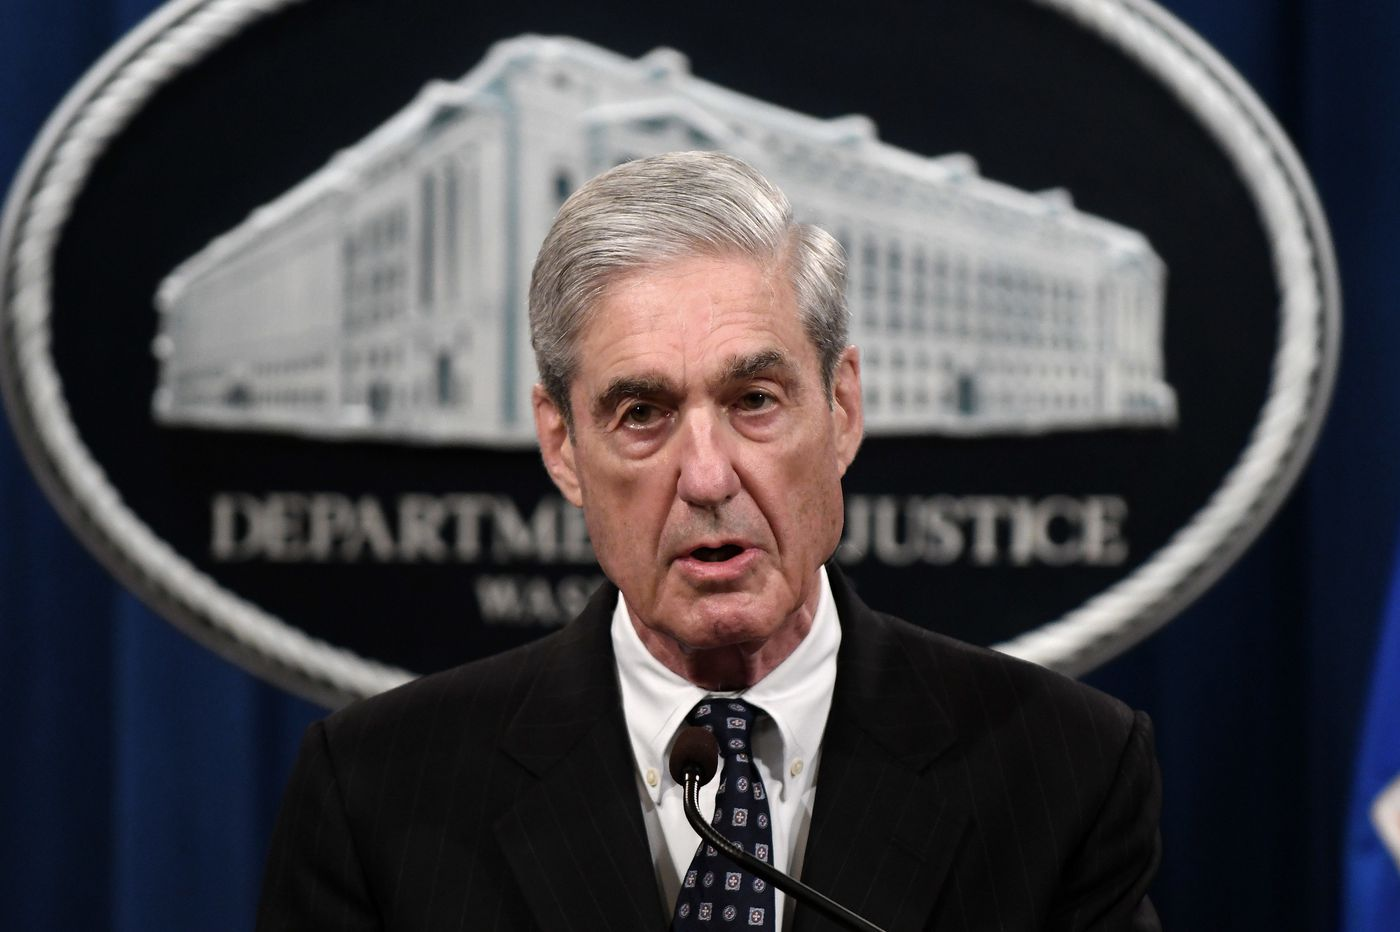 Robert Mueller: If we had confidence Trump didn't commit a crime, 'we would have said so'